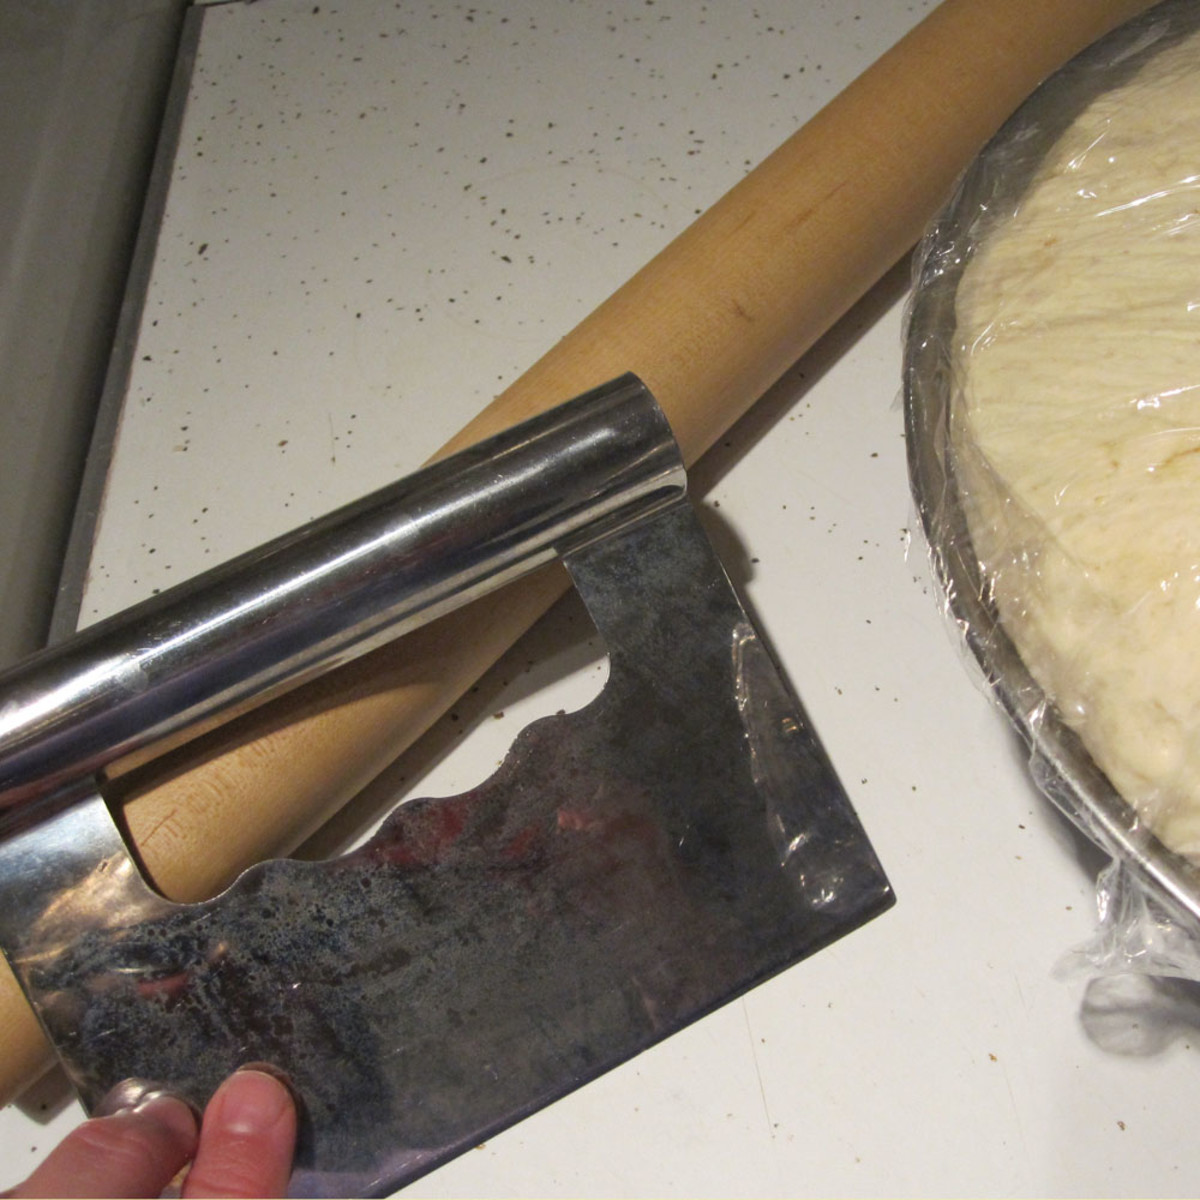 Bench scraper/dough cutter and French rolling pin.